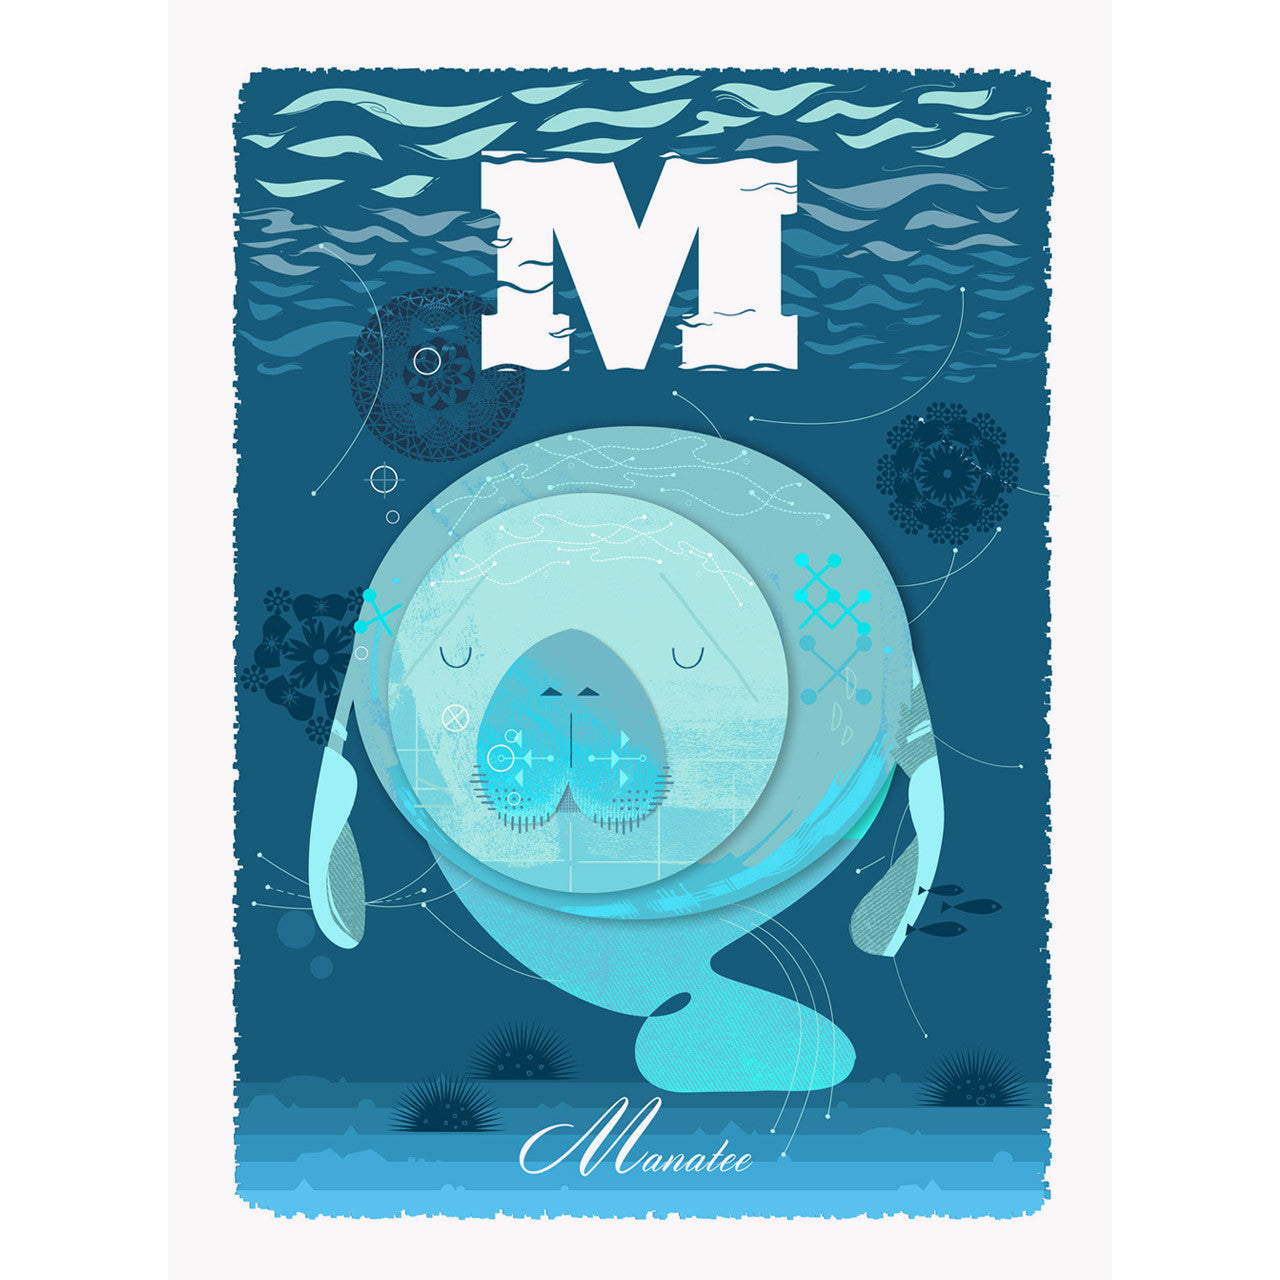 Manatee print by Graham Carter